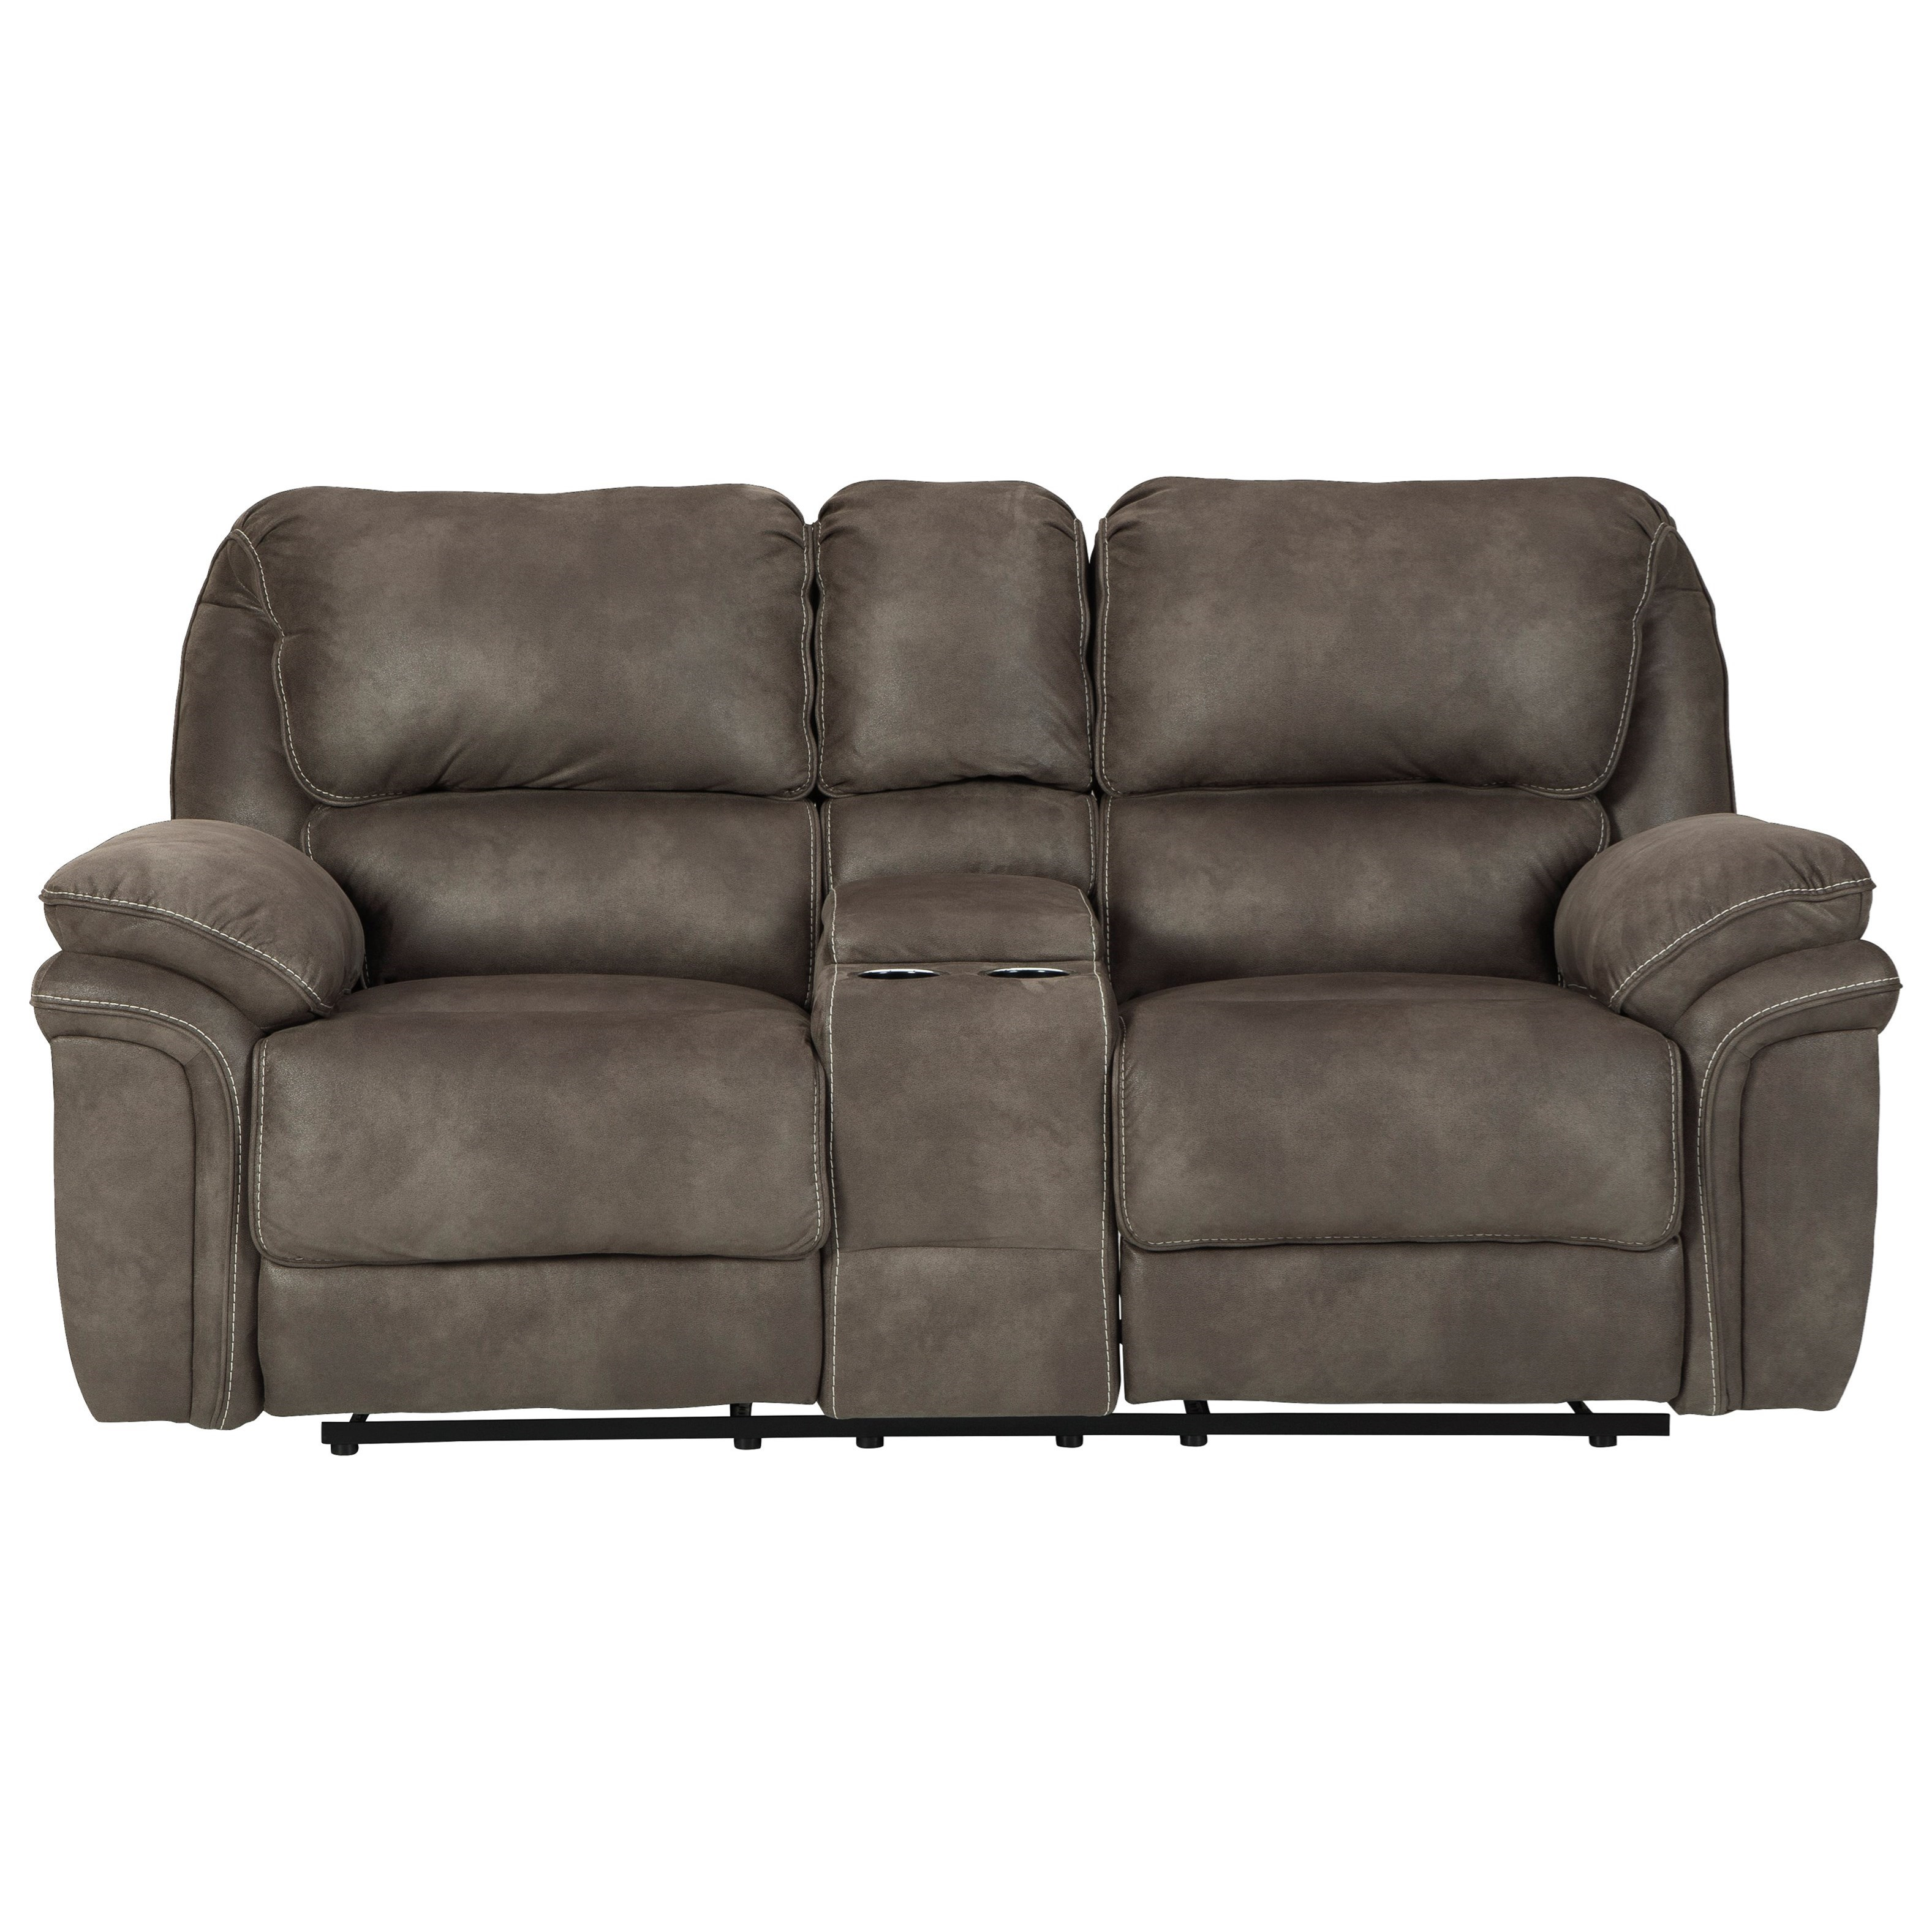 Trementon Double Reclining Loveseat w/ Console by Benchcraft at Value City Furniture